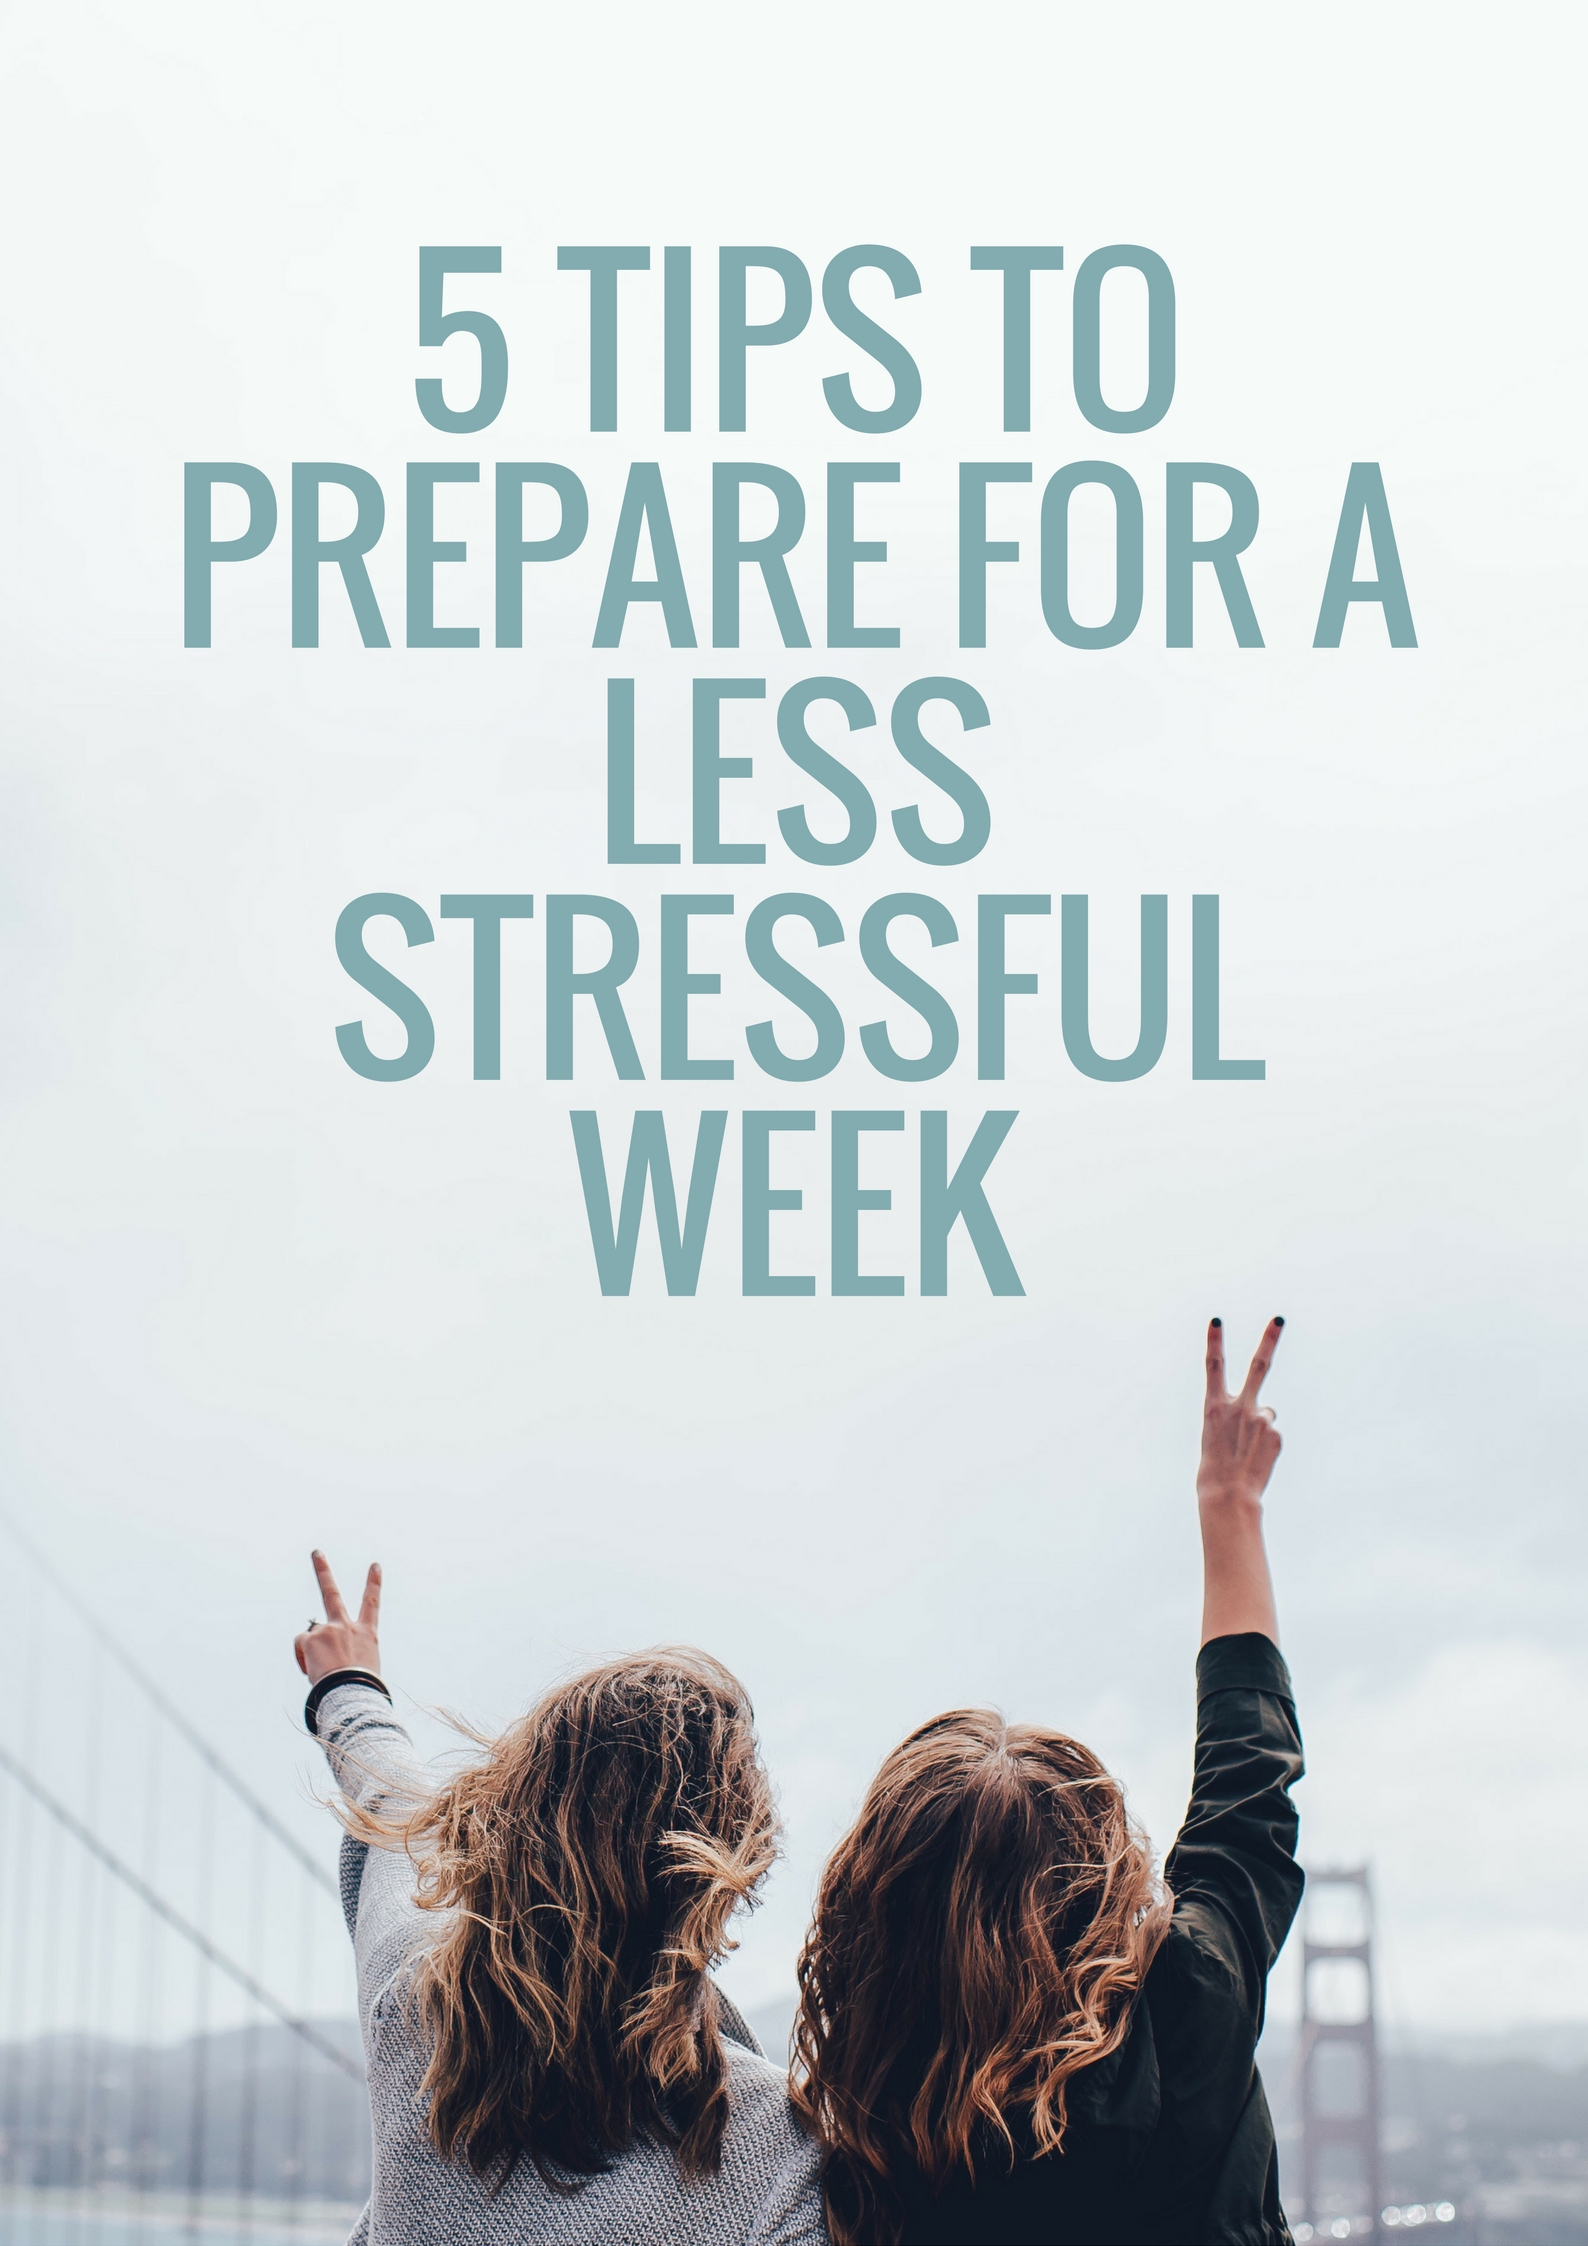 5 Tips to Prepare for a Less Stressful week